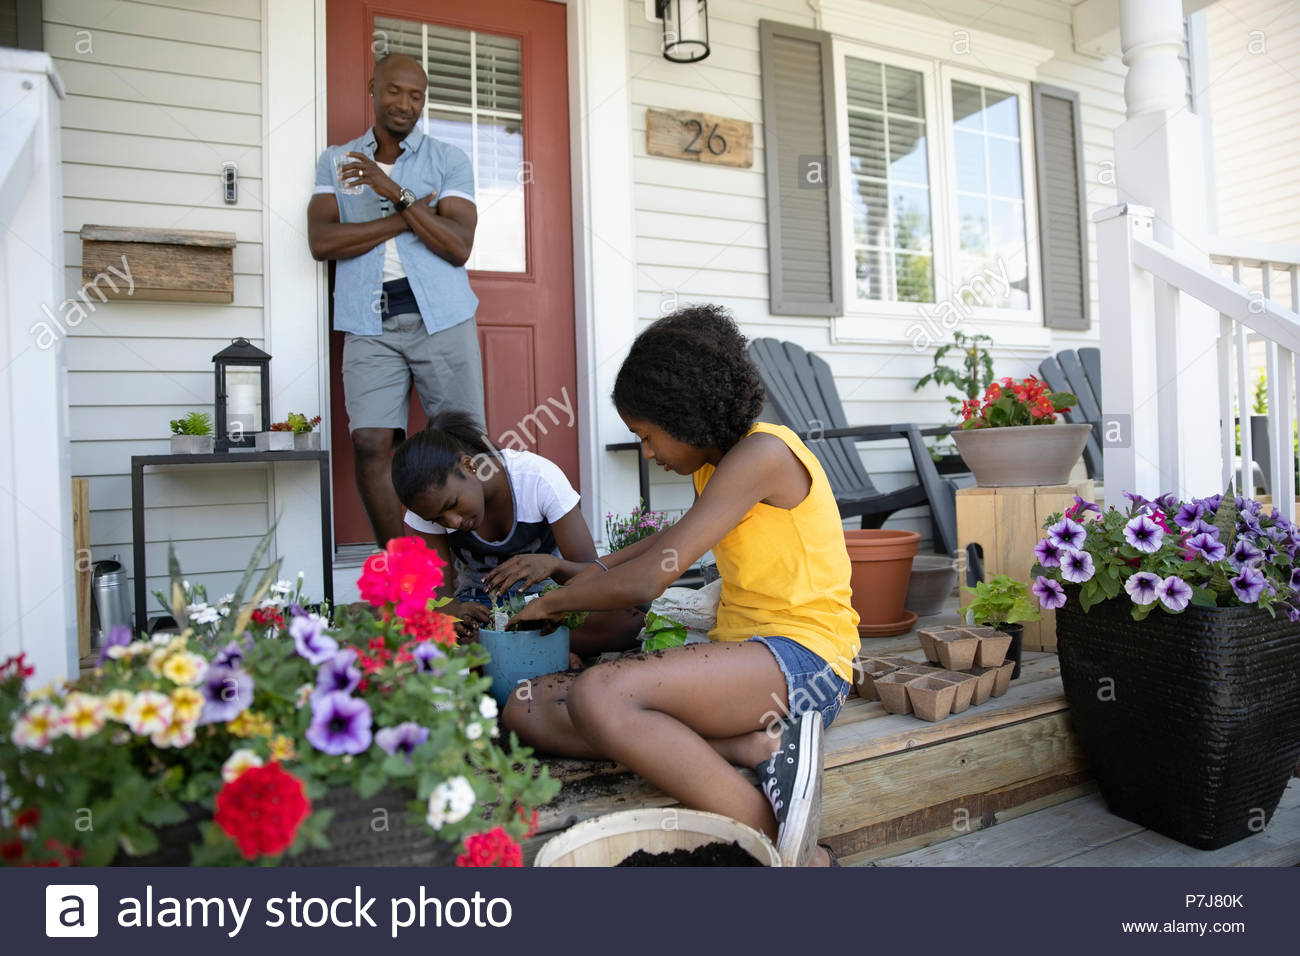 Father watching tween daughters potting flowers on front stoop - Stock Image